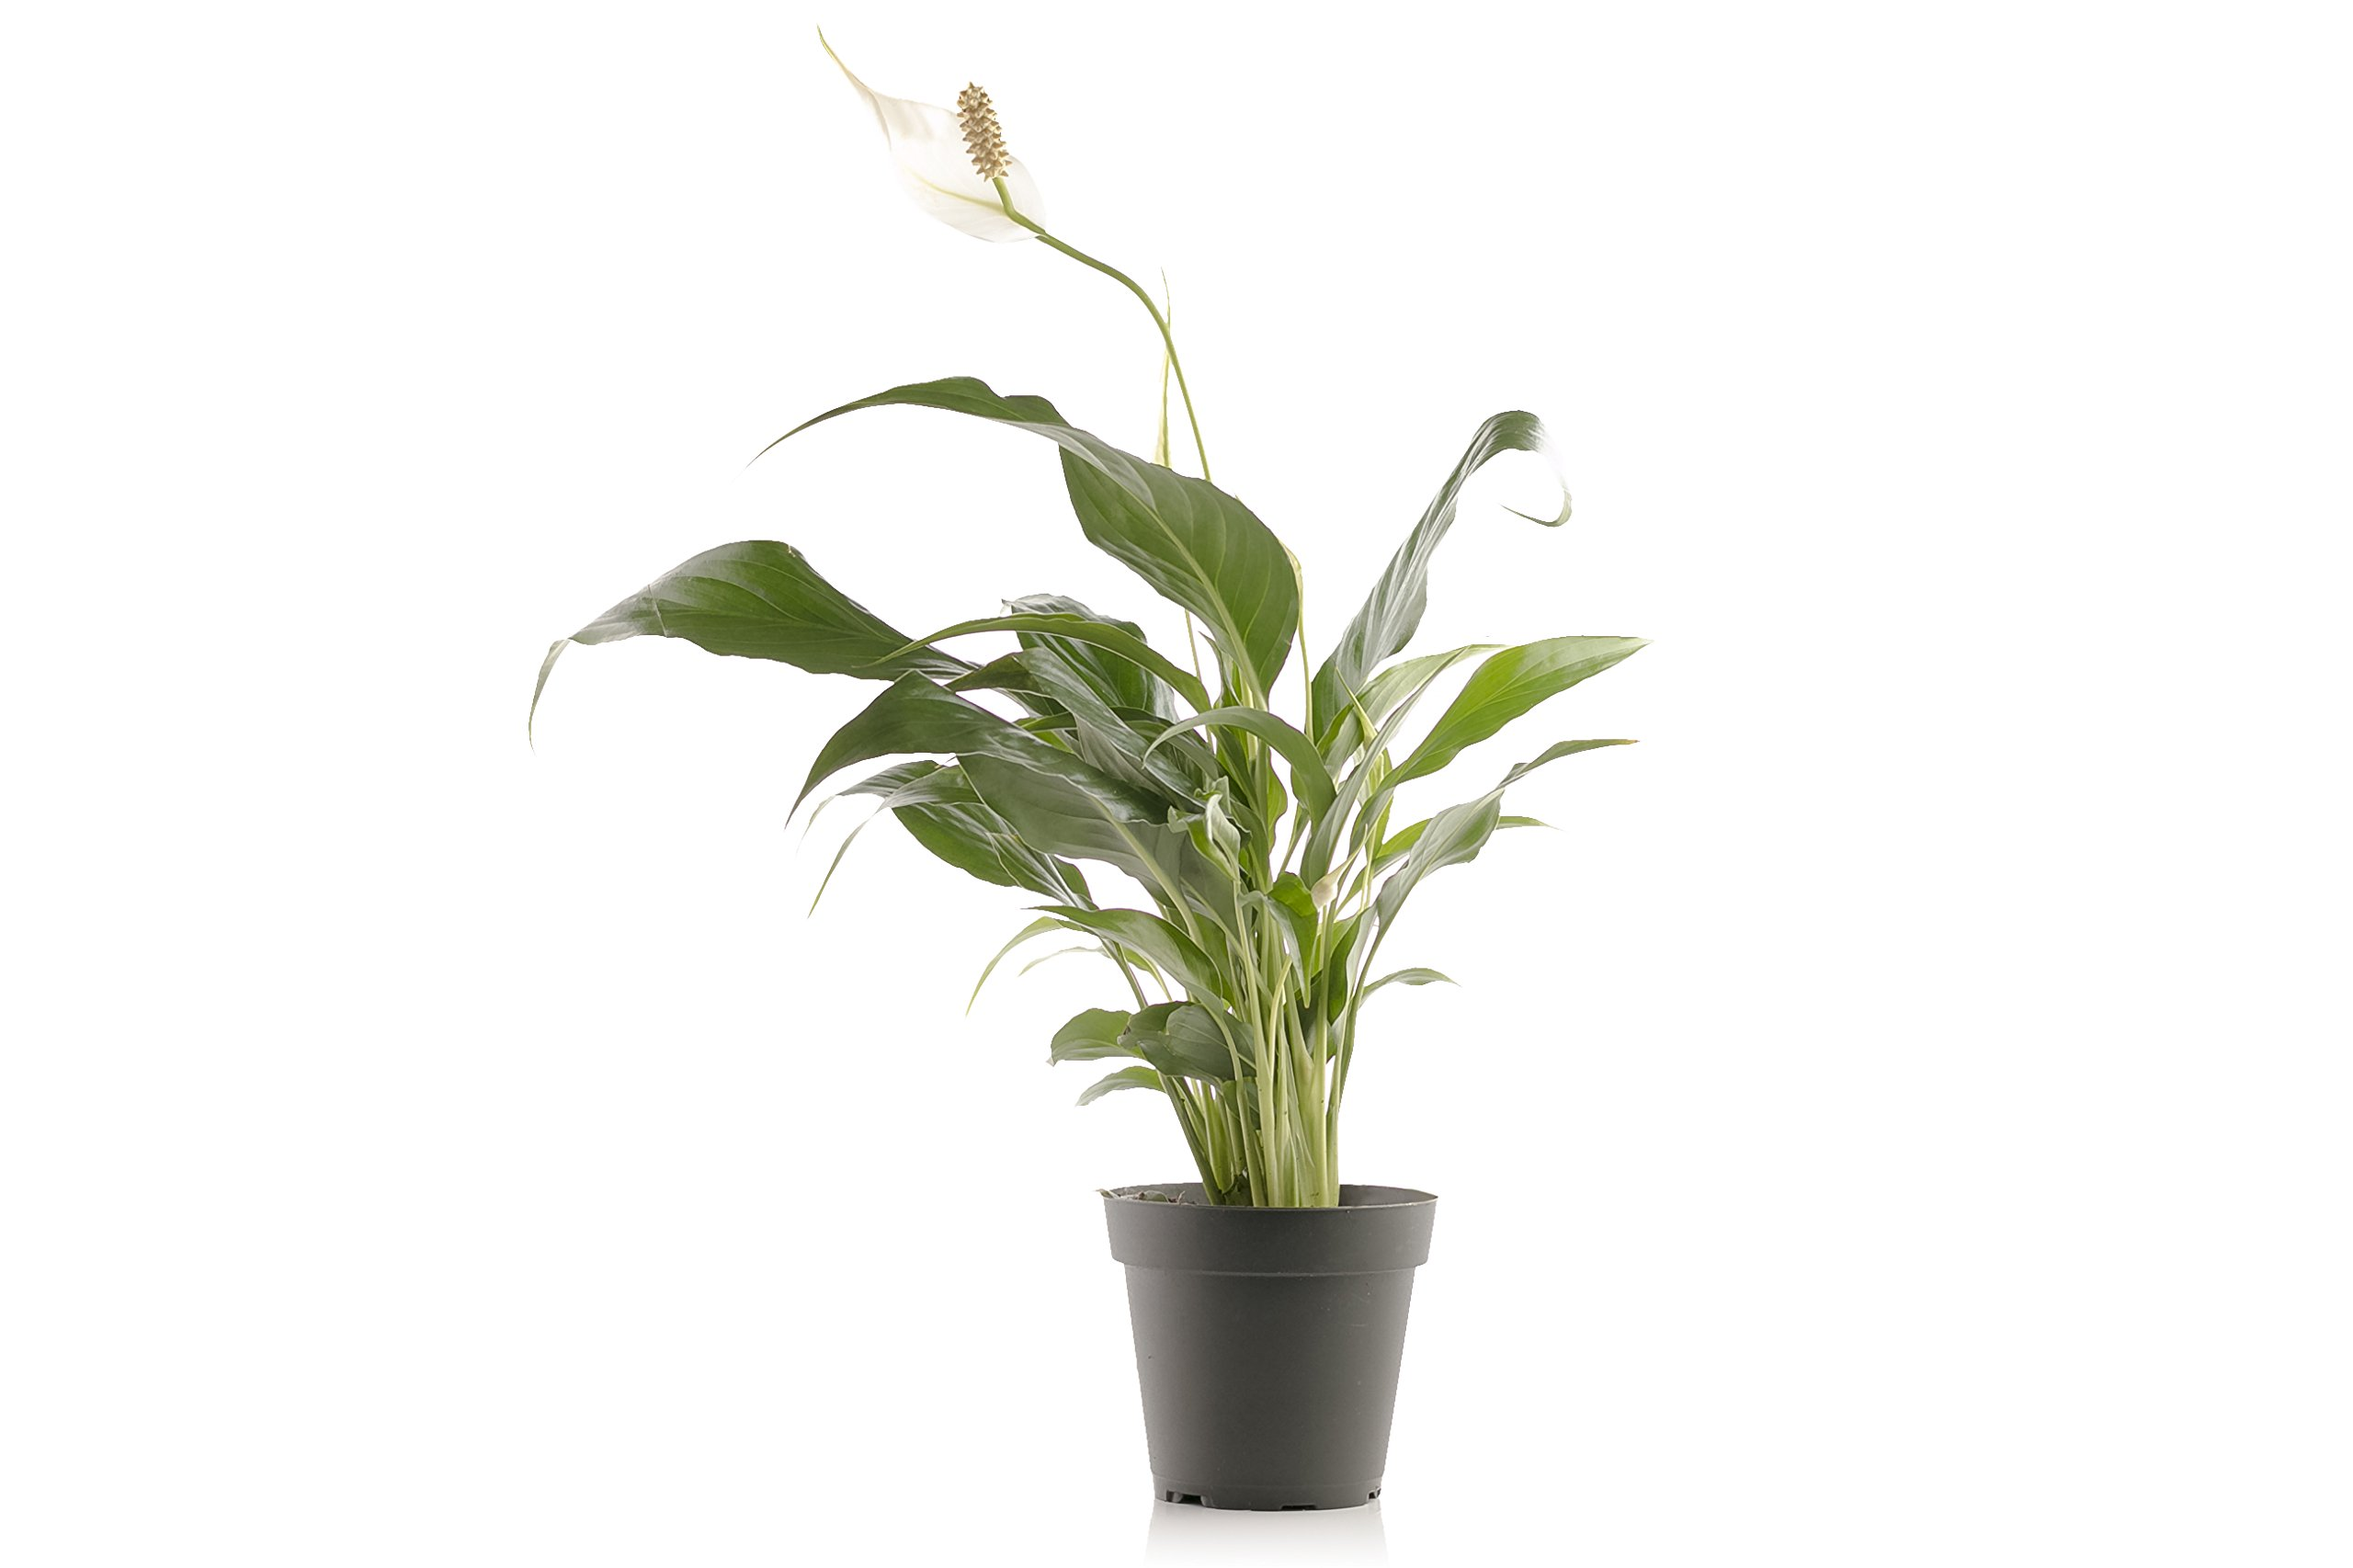 Set of 4 Indoor Plants - Live Potted Plants for Your Home or Office - Includes Red Aglaonema, Snake Plant, Philodendron, and Peace Lily - Great for Interior Decorating and Cleaning the Air by BDWS (Image #5)